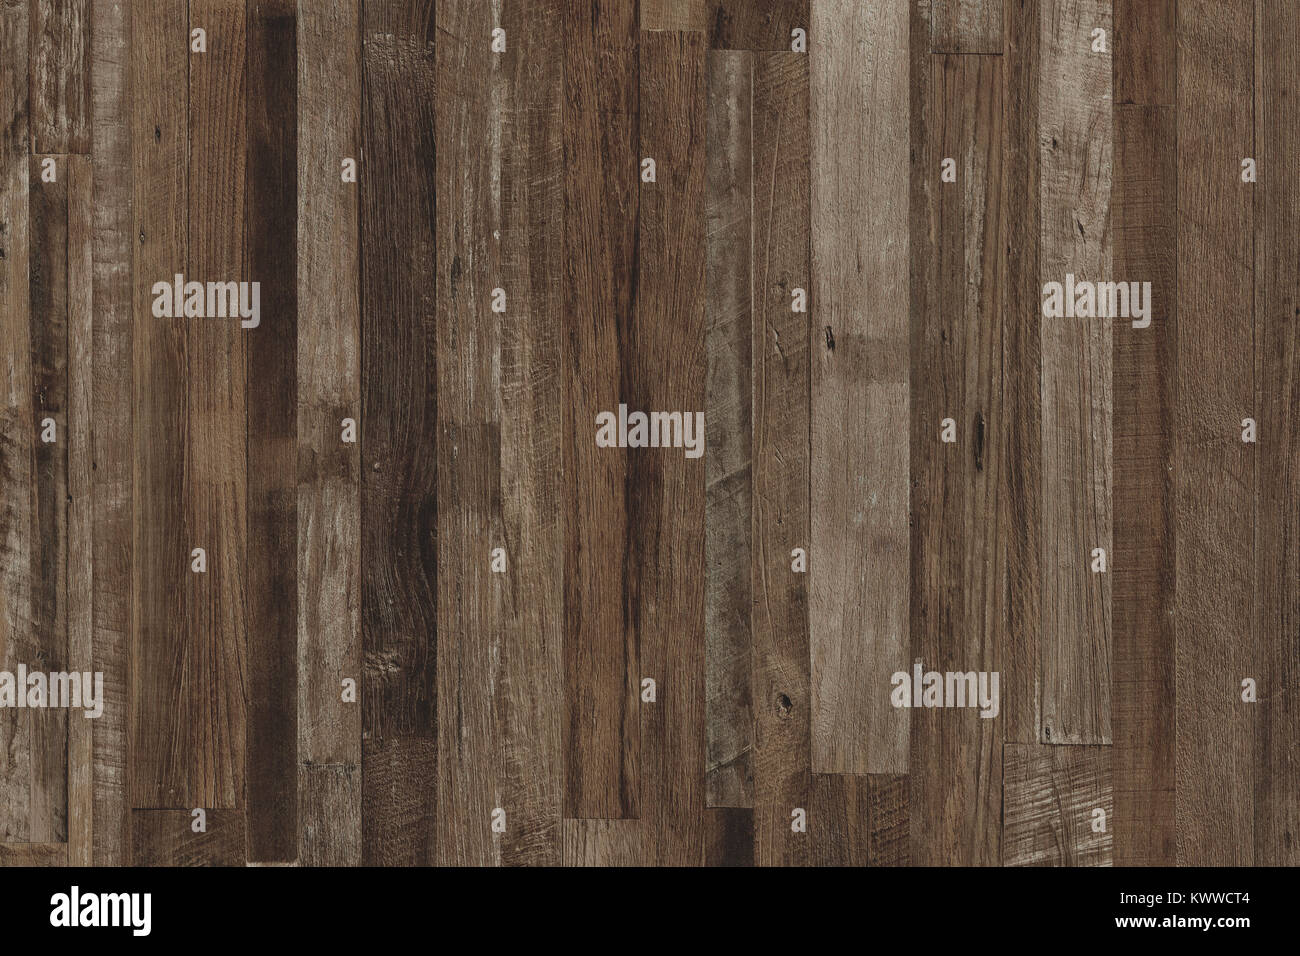 Wood wall, Mixed Species Wood flooring pattern for background texture or interior design element. - Stock Image